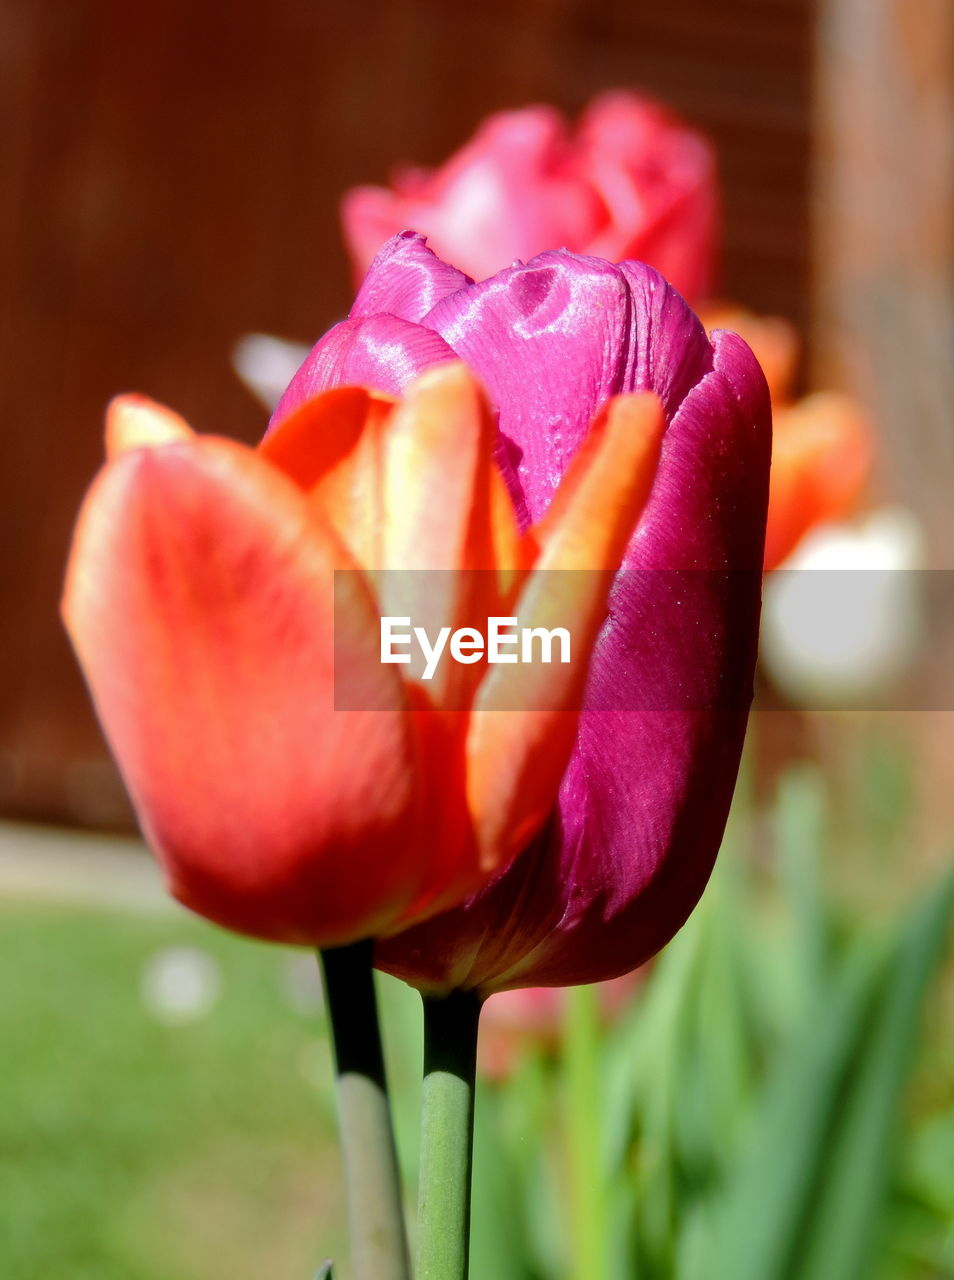 vulnerability, flowering plant, flower, fragility, freshness, plant, beauty in nature, petal, close-up, inflorescence, flower head, growth, focus on foreground, nature, no people, tulip, day, pink color, red, outdoors